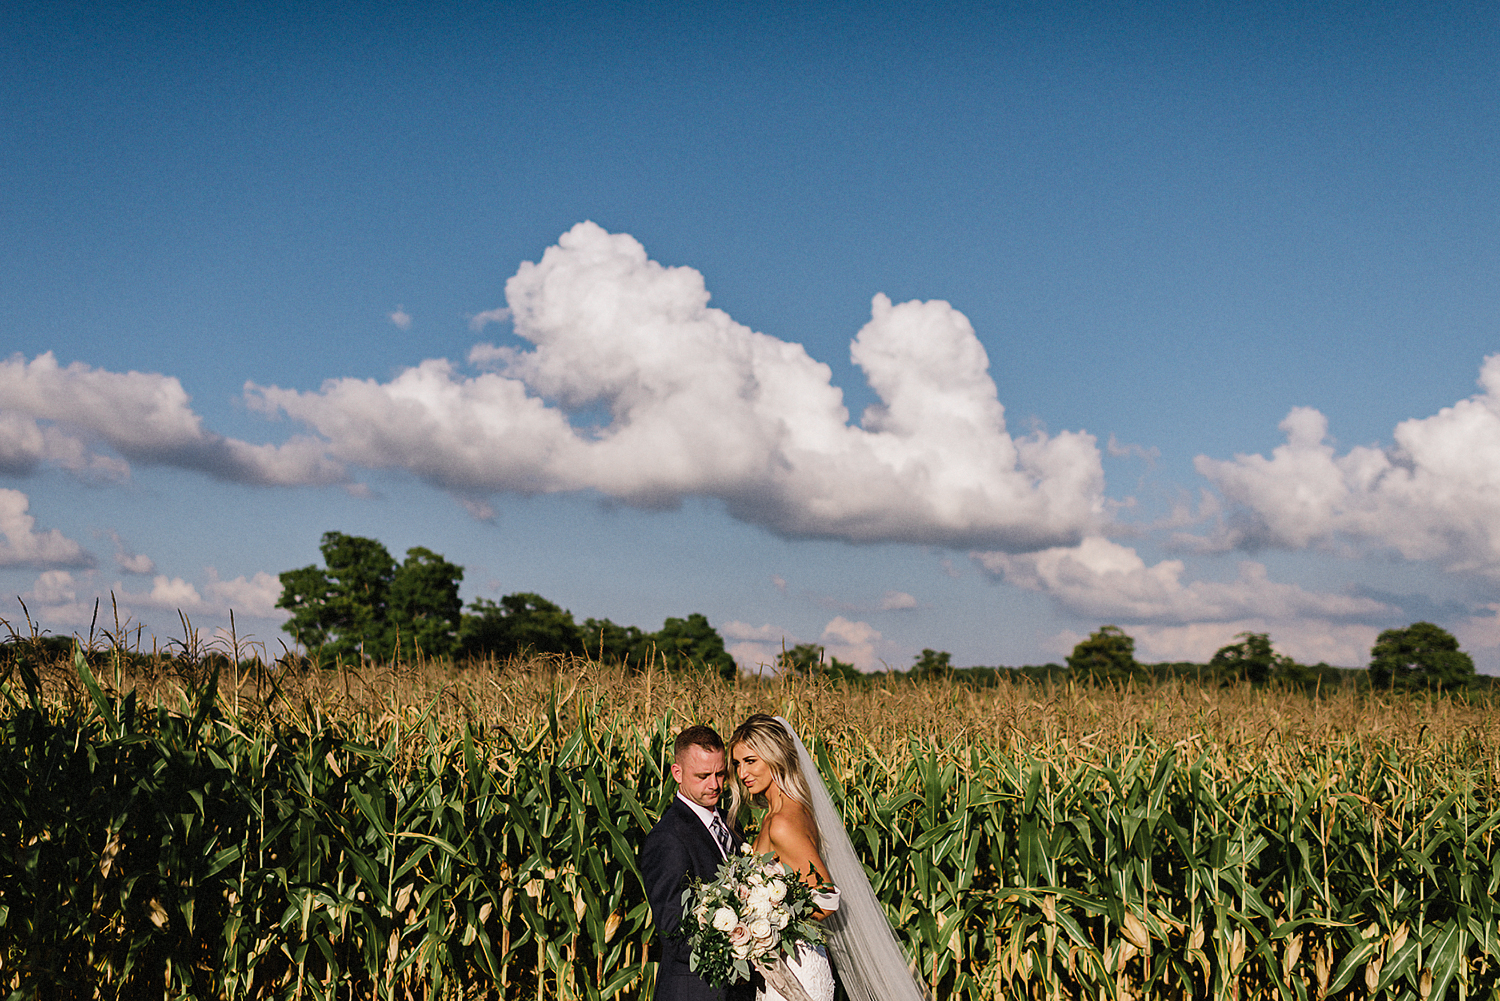 dowswell-barn-wedding-beaverton-best-wedding-photographers-toronto-moody-style-candid-photojounalistic-approach-intimate-vintage-farm-wedding-Farm-wedding-bridal-party-groomsmen-candid-drinks-cinematic-portrait-of-bride-and-groom-cornfield.jpg